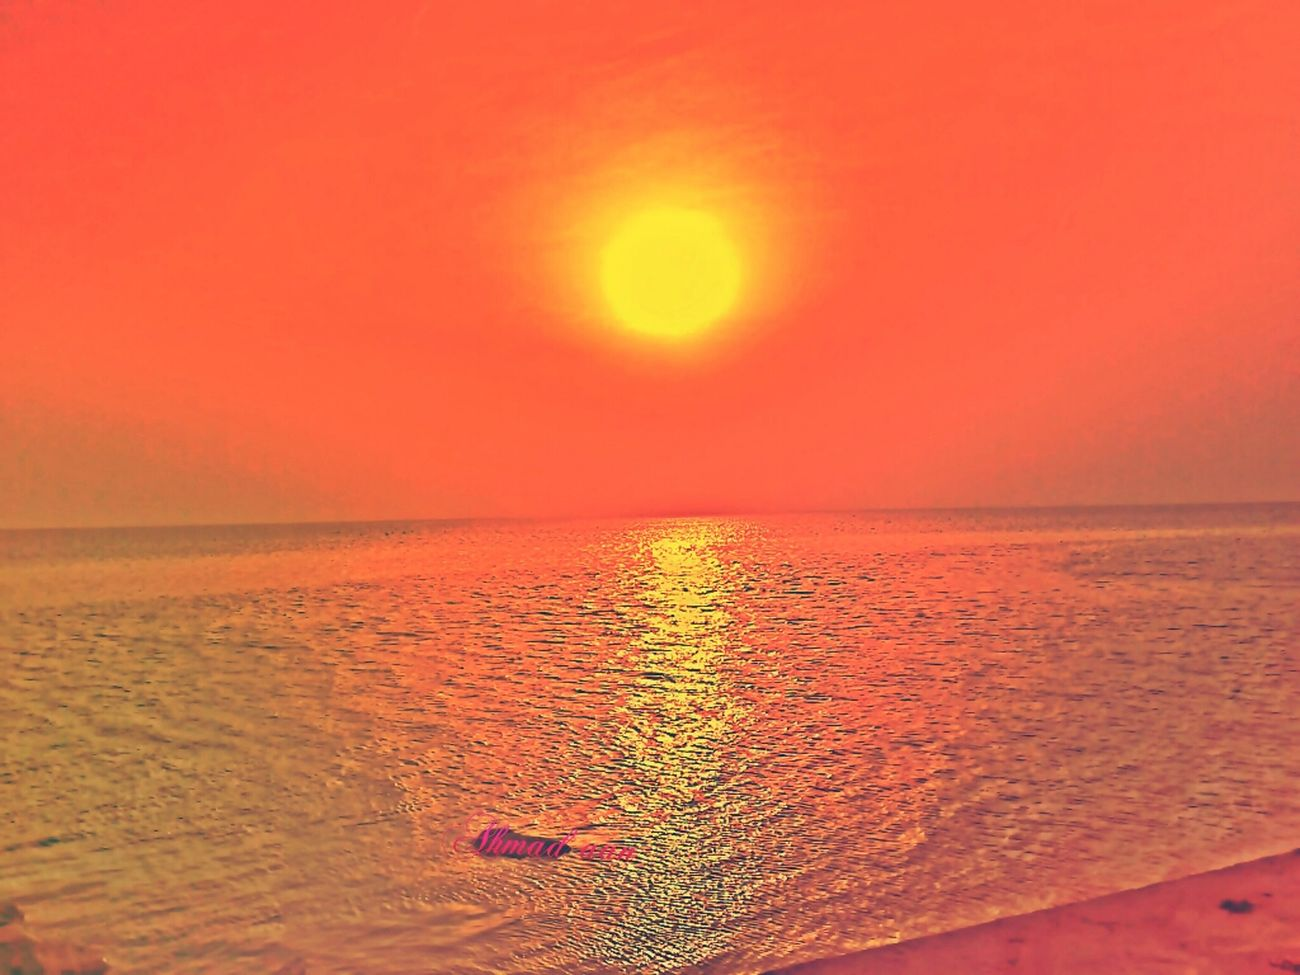 #sunrise#beach#sky#iphoneography#ihonesis